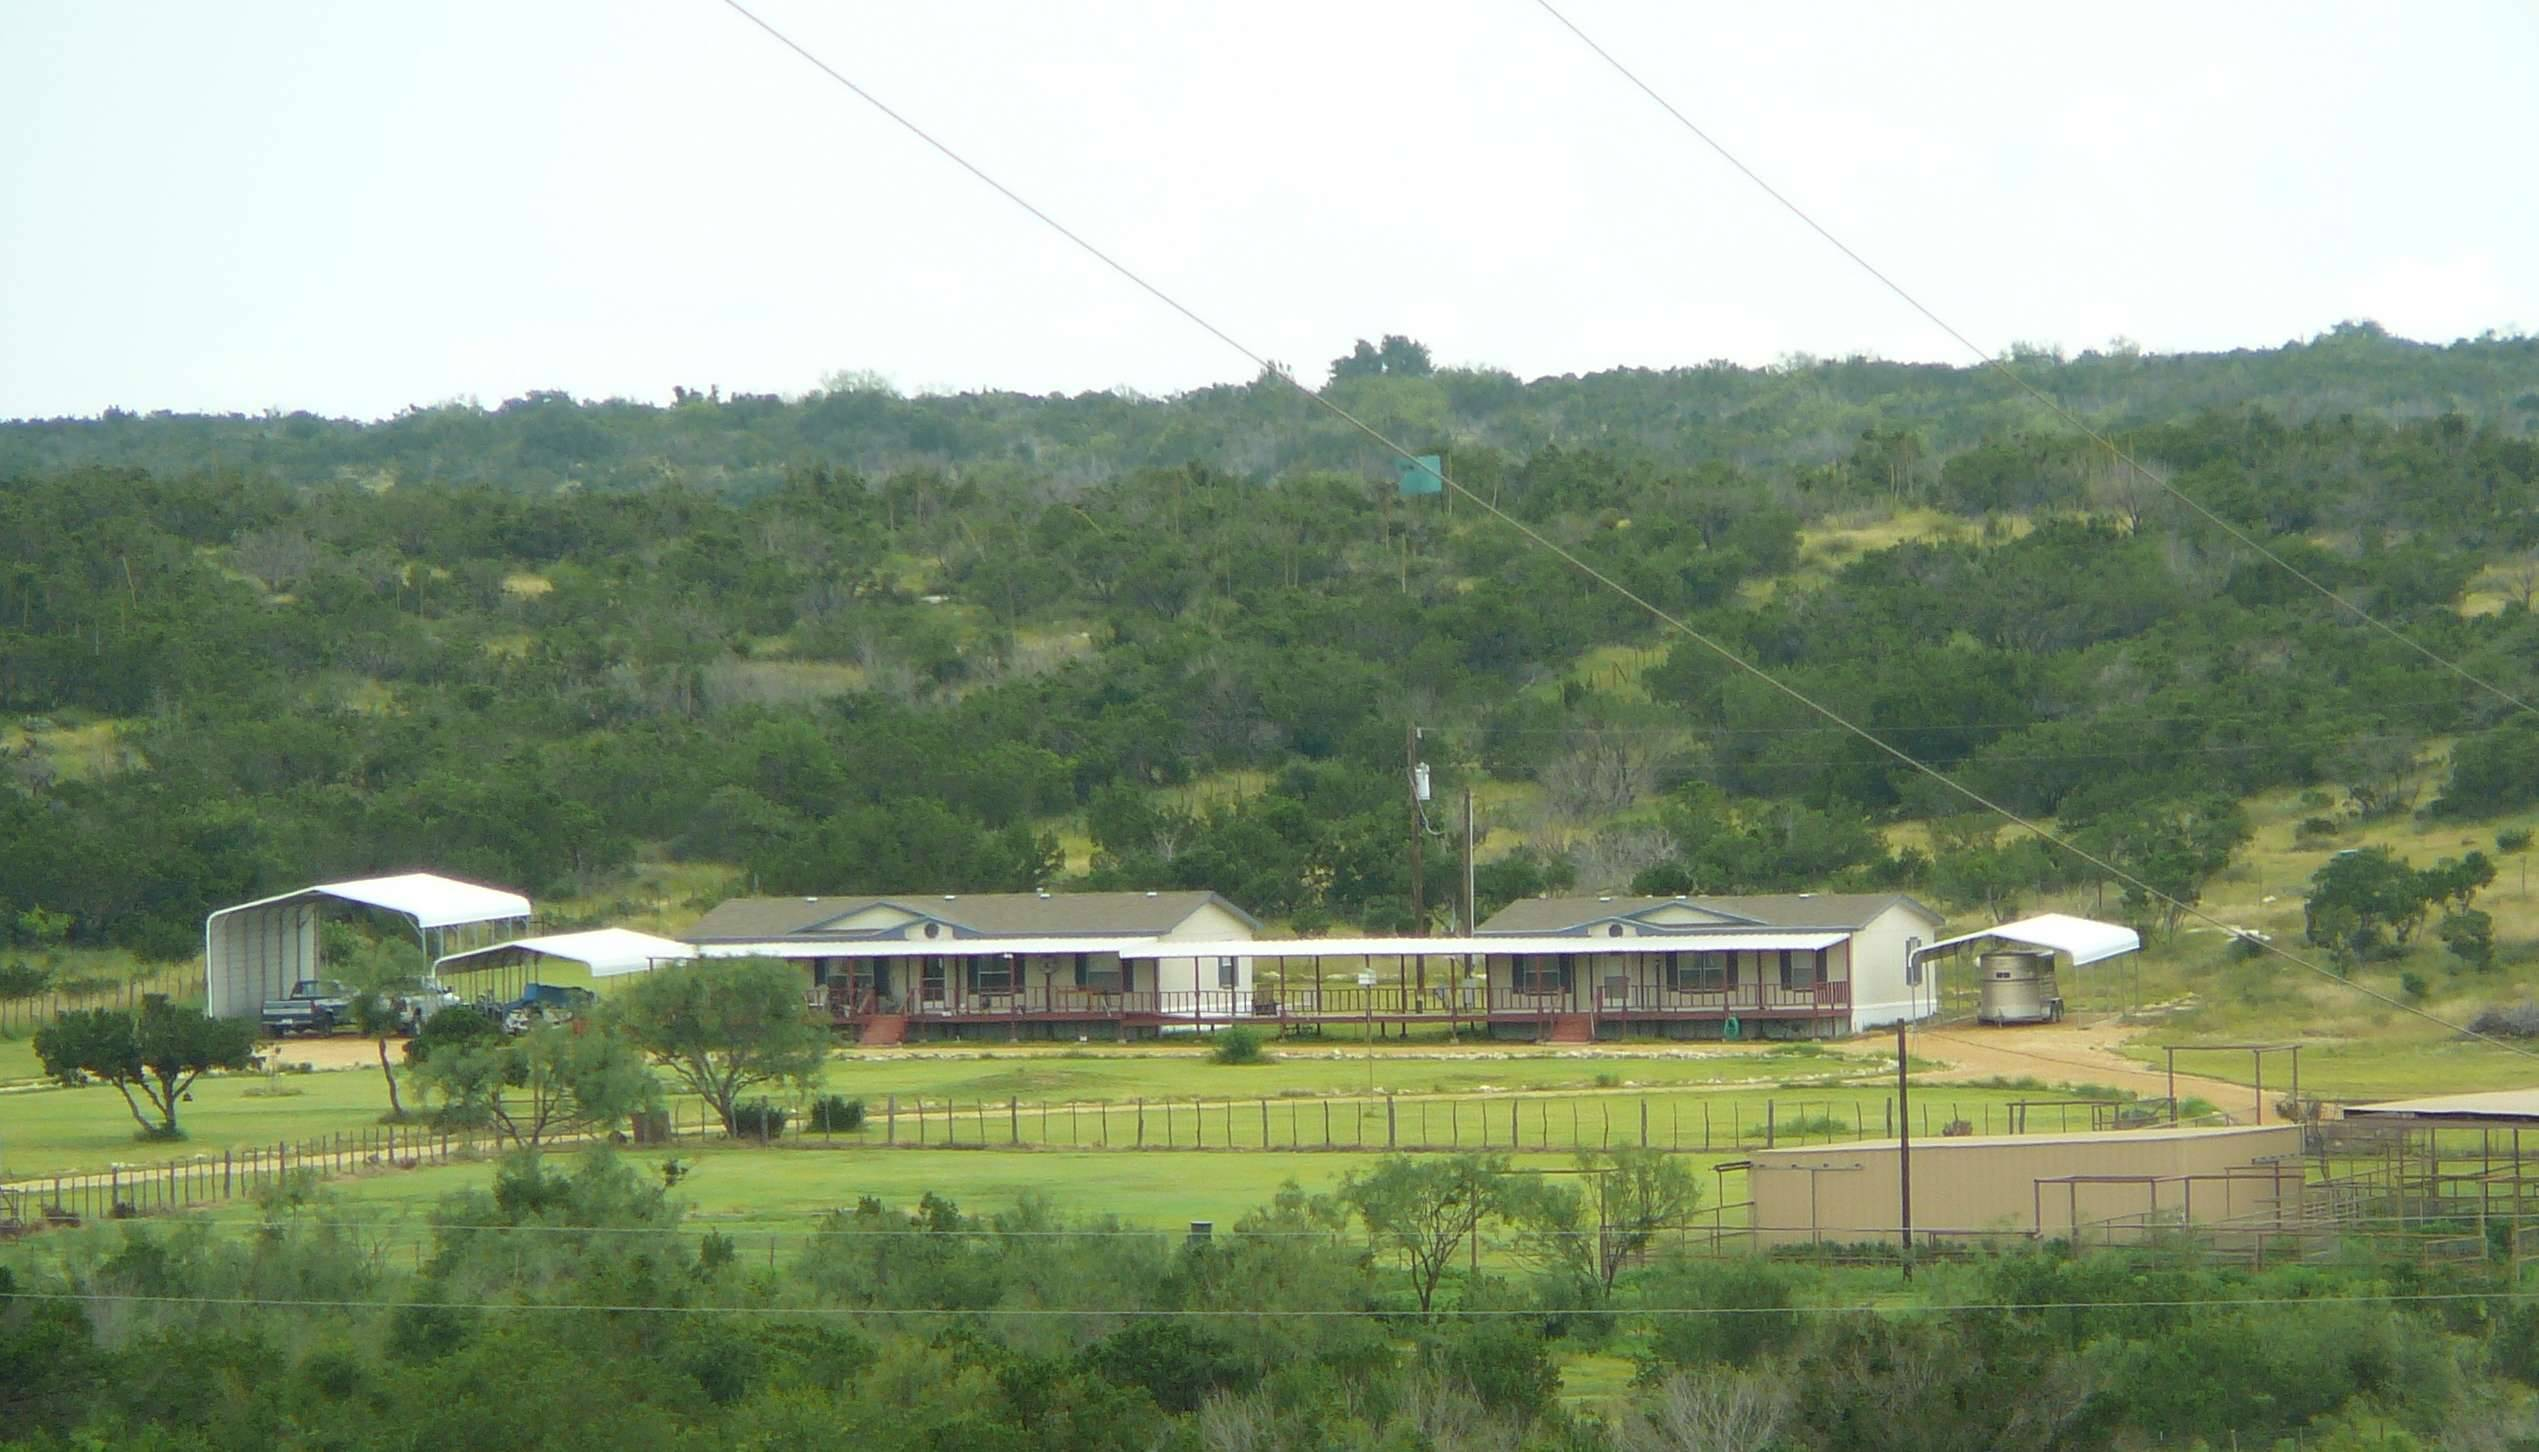 Ozona (TX) United States  city photos gallery : for Sale Ozona, Texas, United States Exotic Game Ranch in West Texas ...